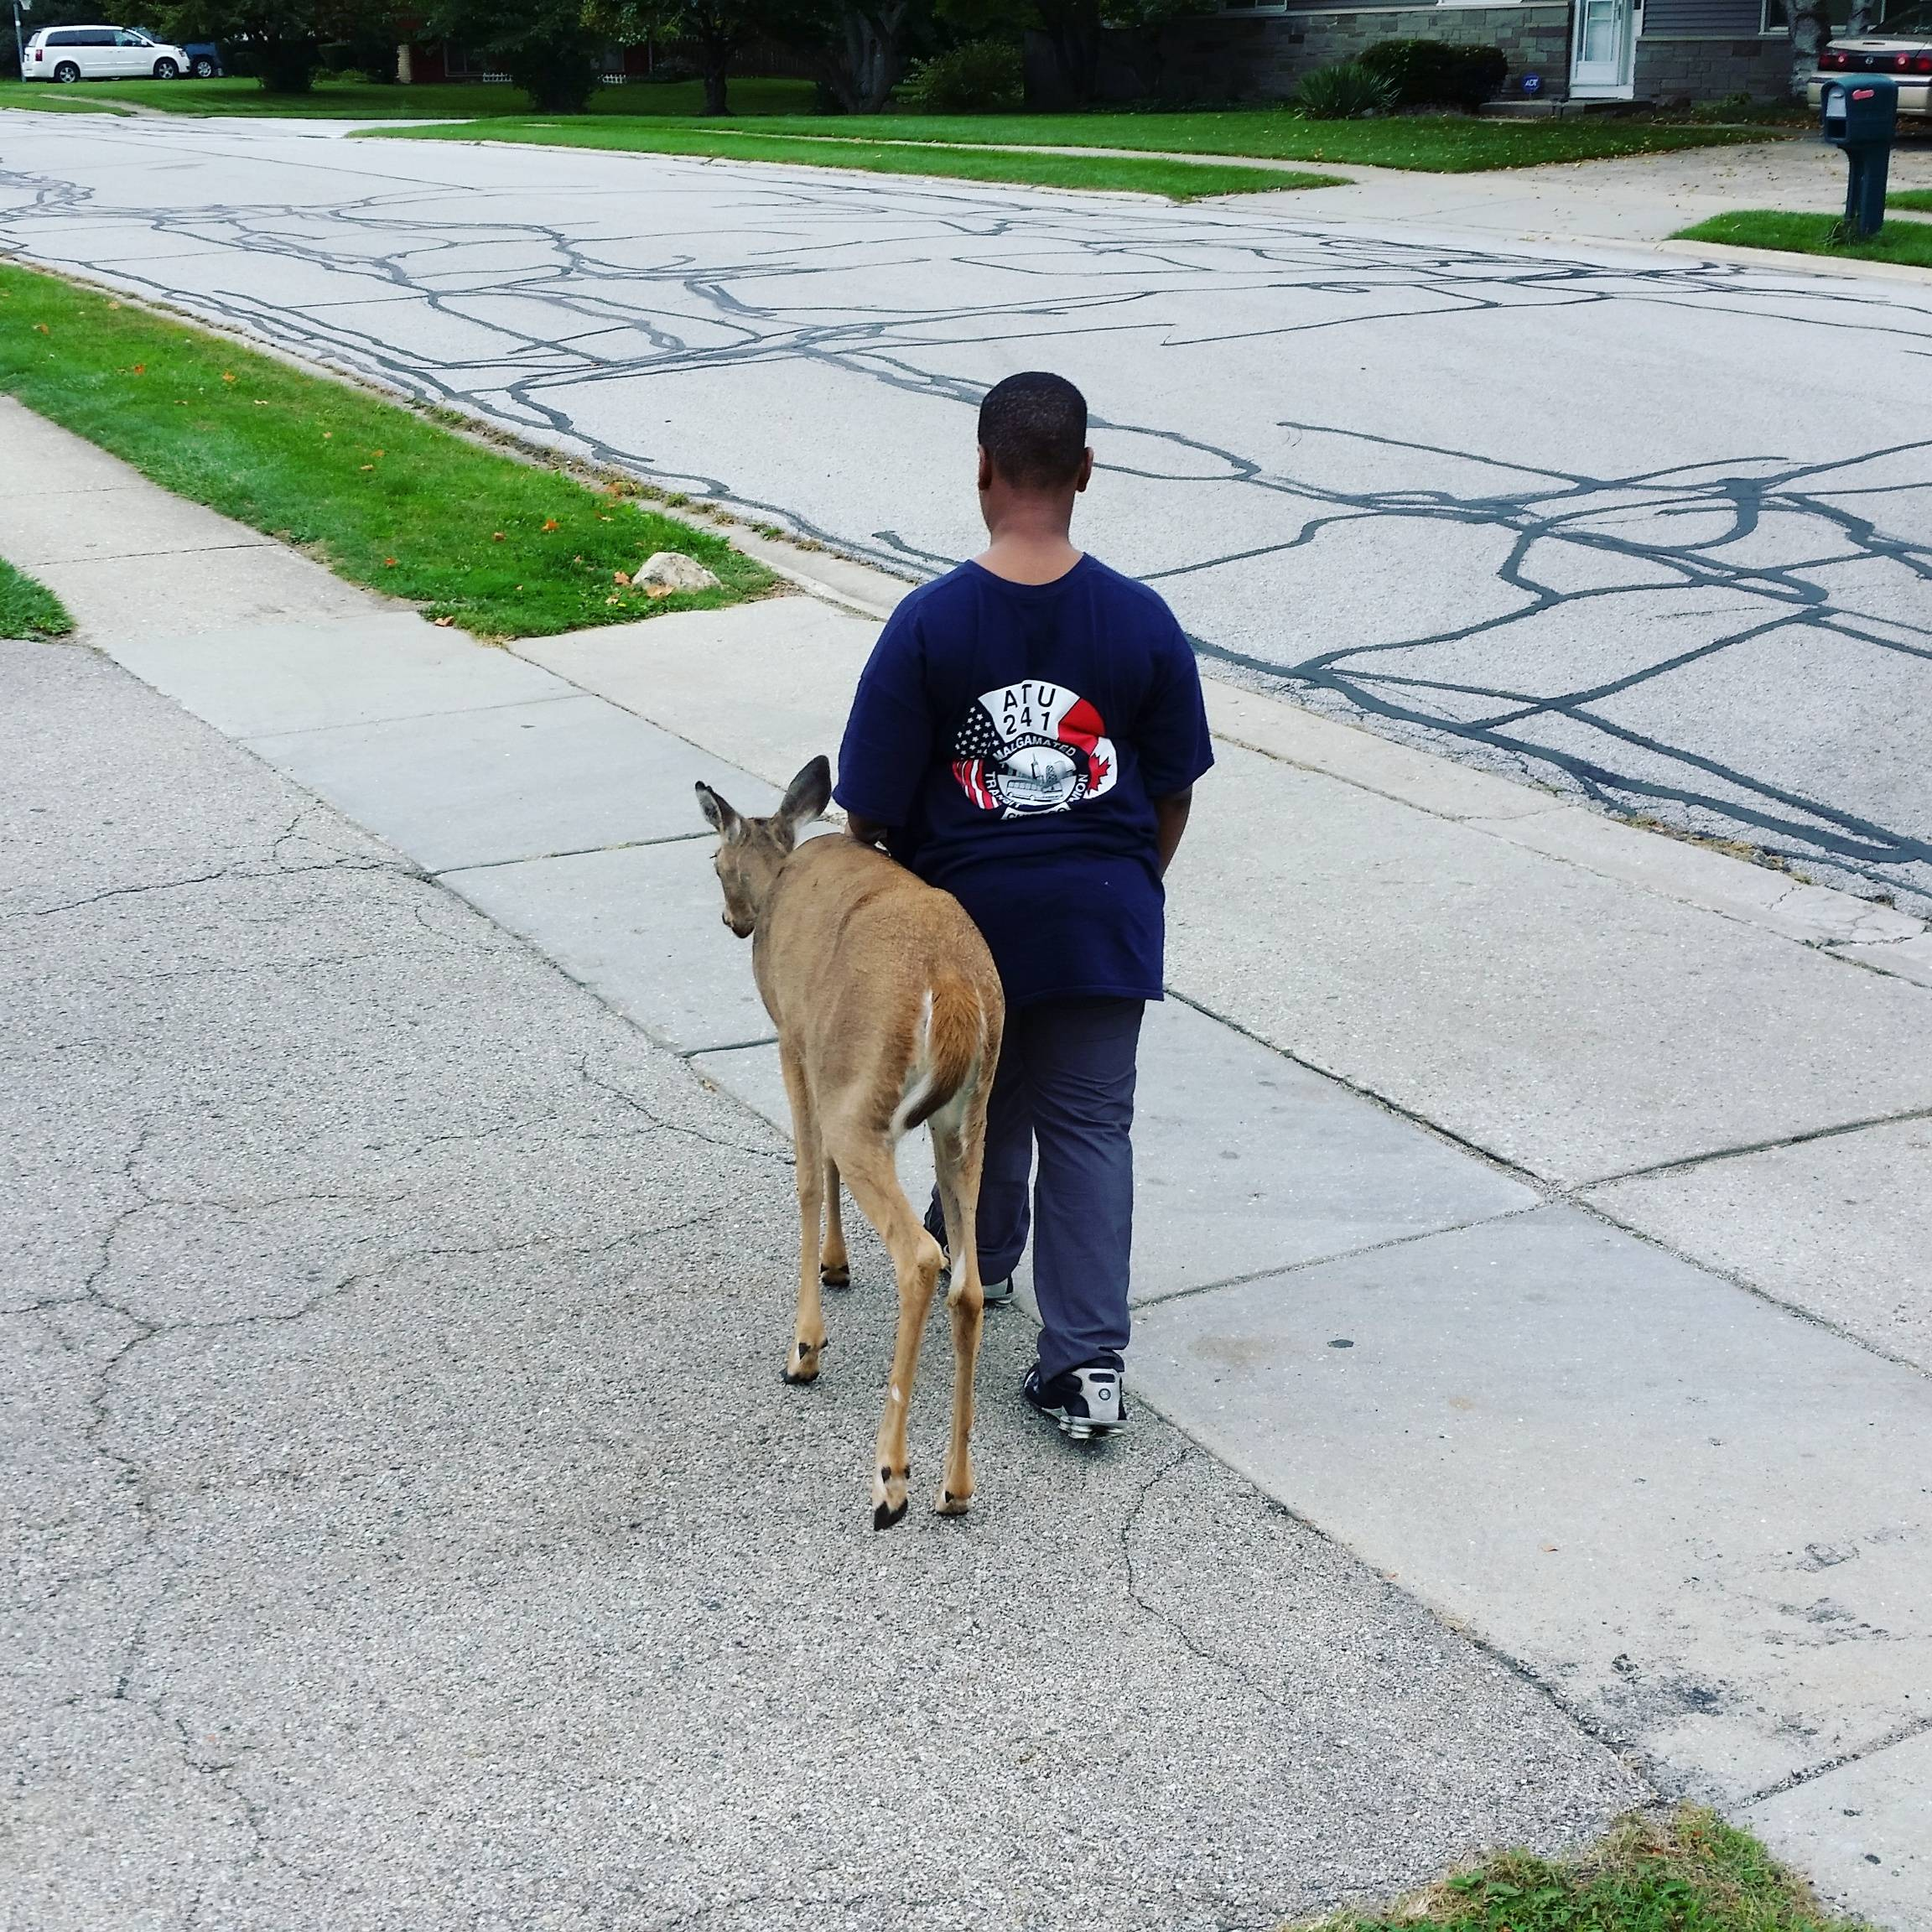 blind deer in our neighborhood and this boy (10 yrs old)